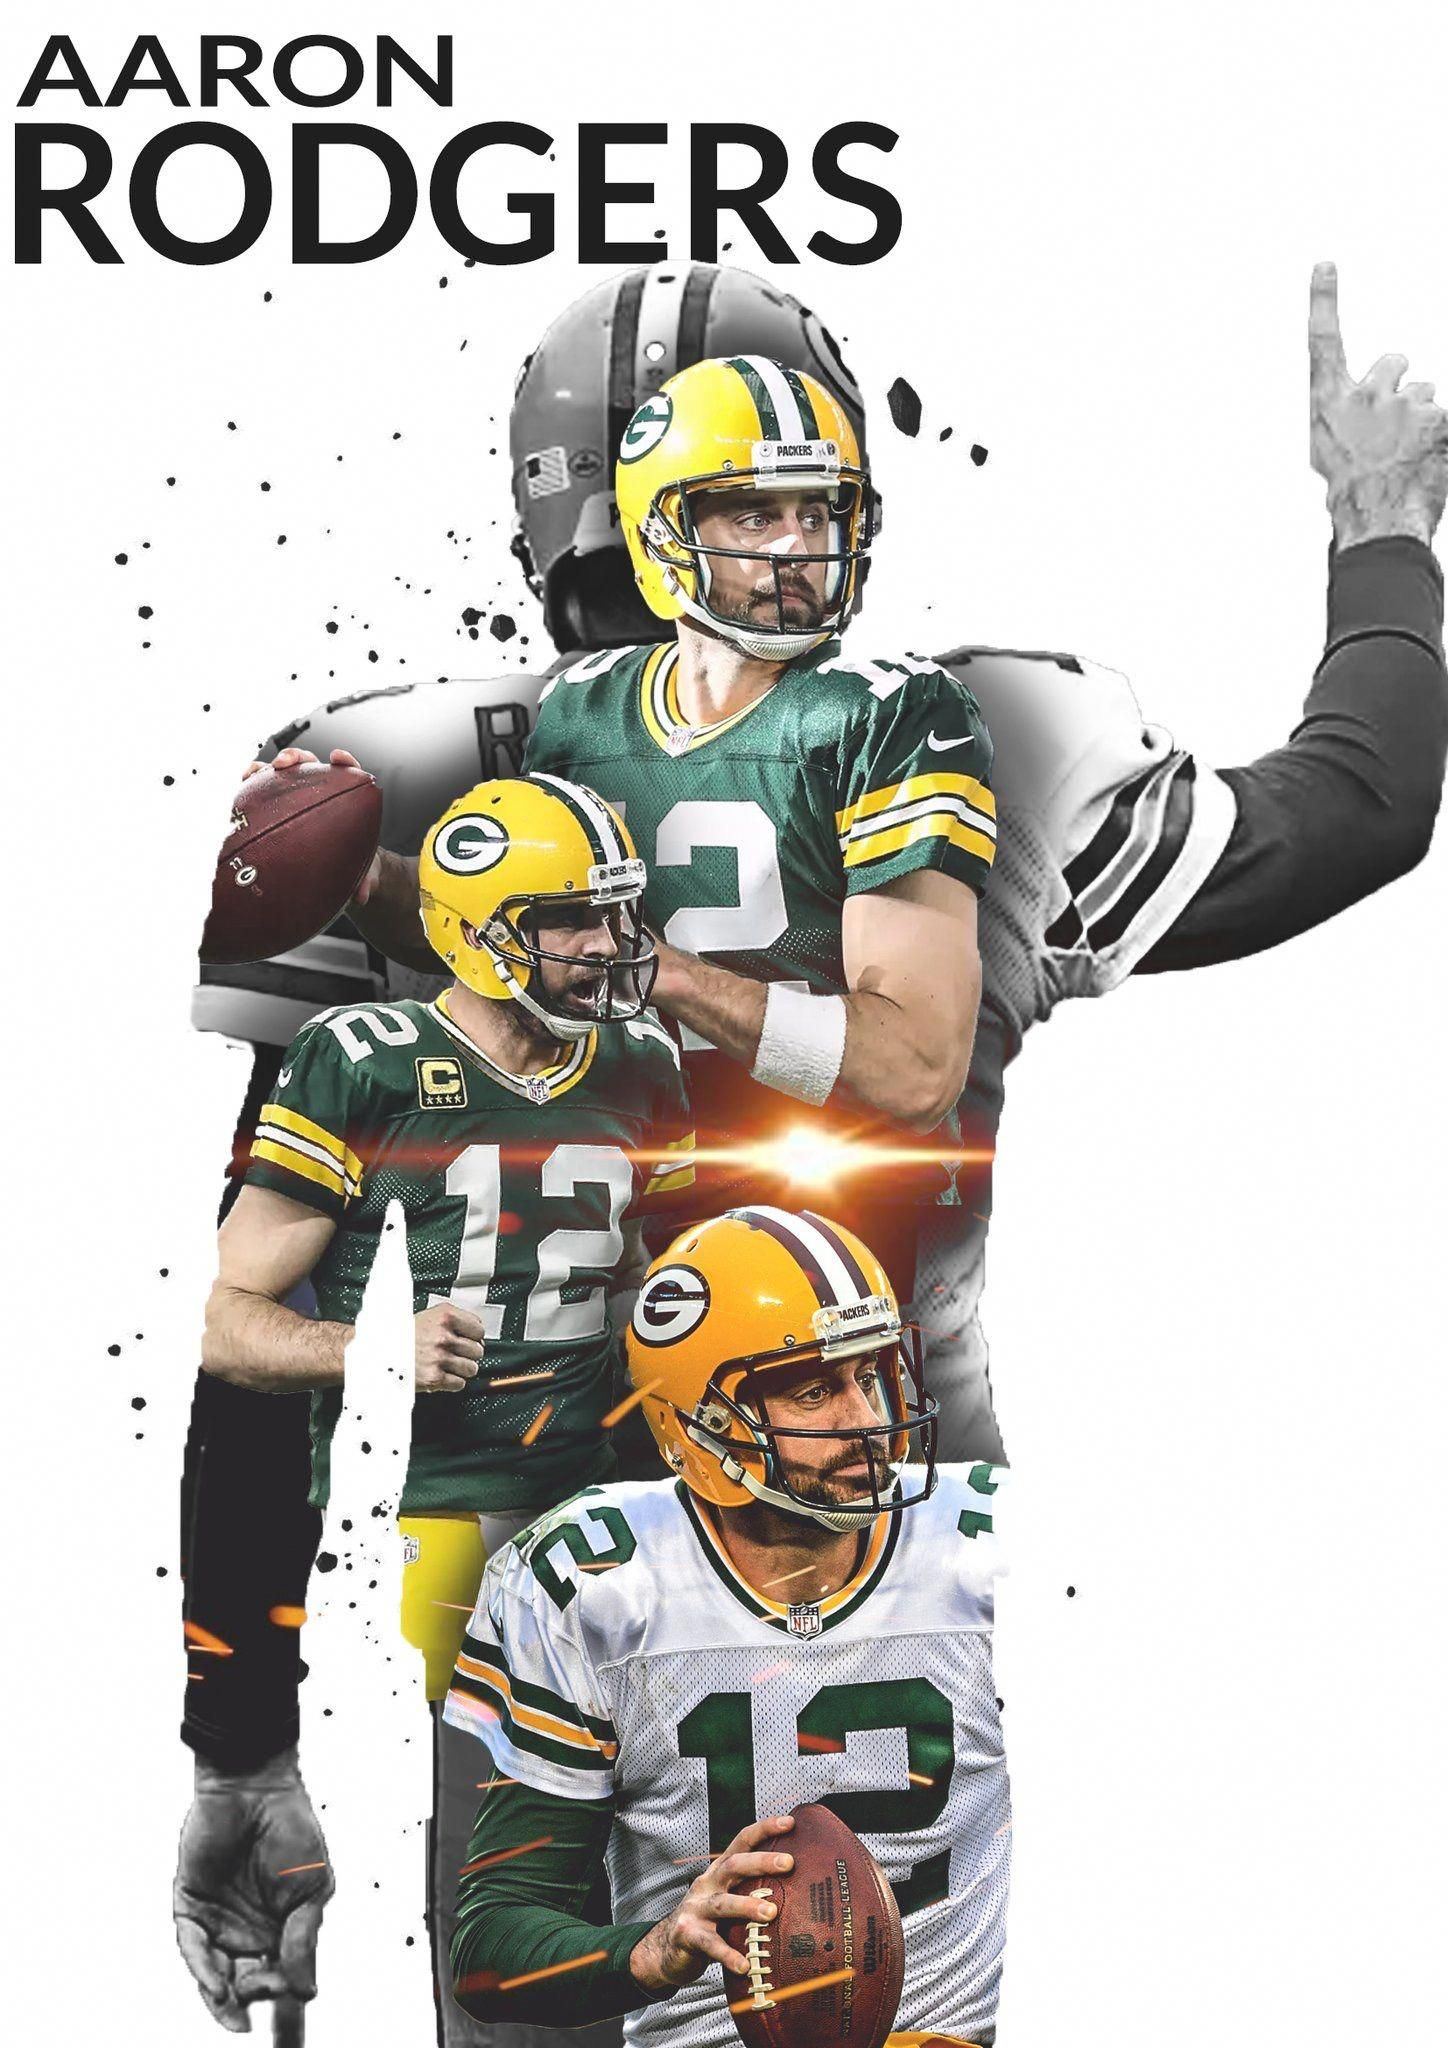 Pin By Dark Knight On Packers Green Bay Packers Meme Green Bay Packers Art Green Bay Packers Aaron Rodgers